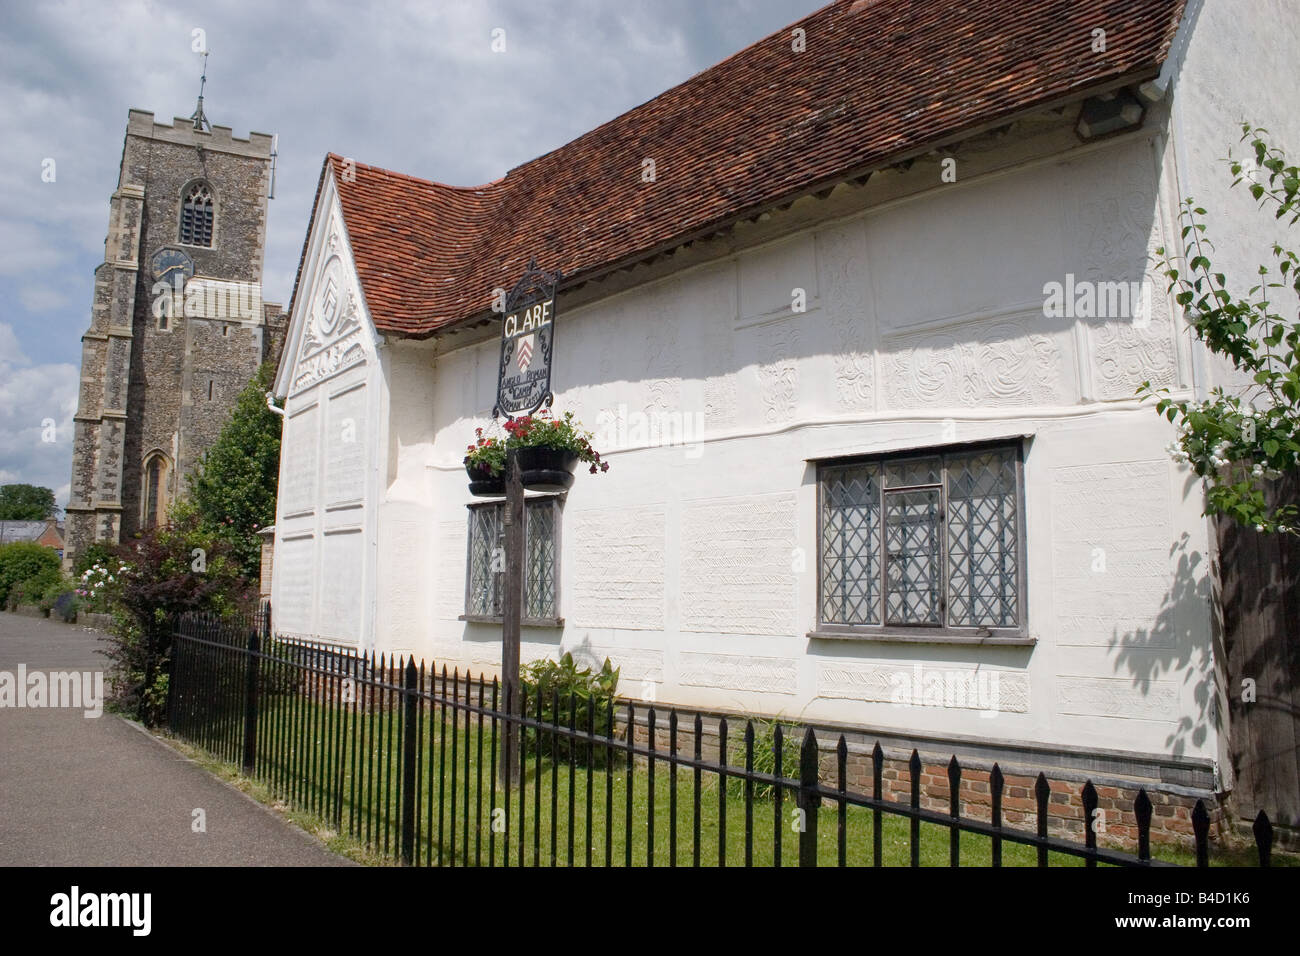 The Ancient House and St Peter and Paul Church medieval town of Clare Suffolk England - Stock Image